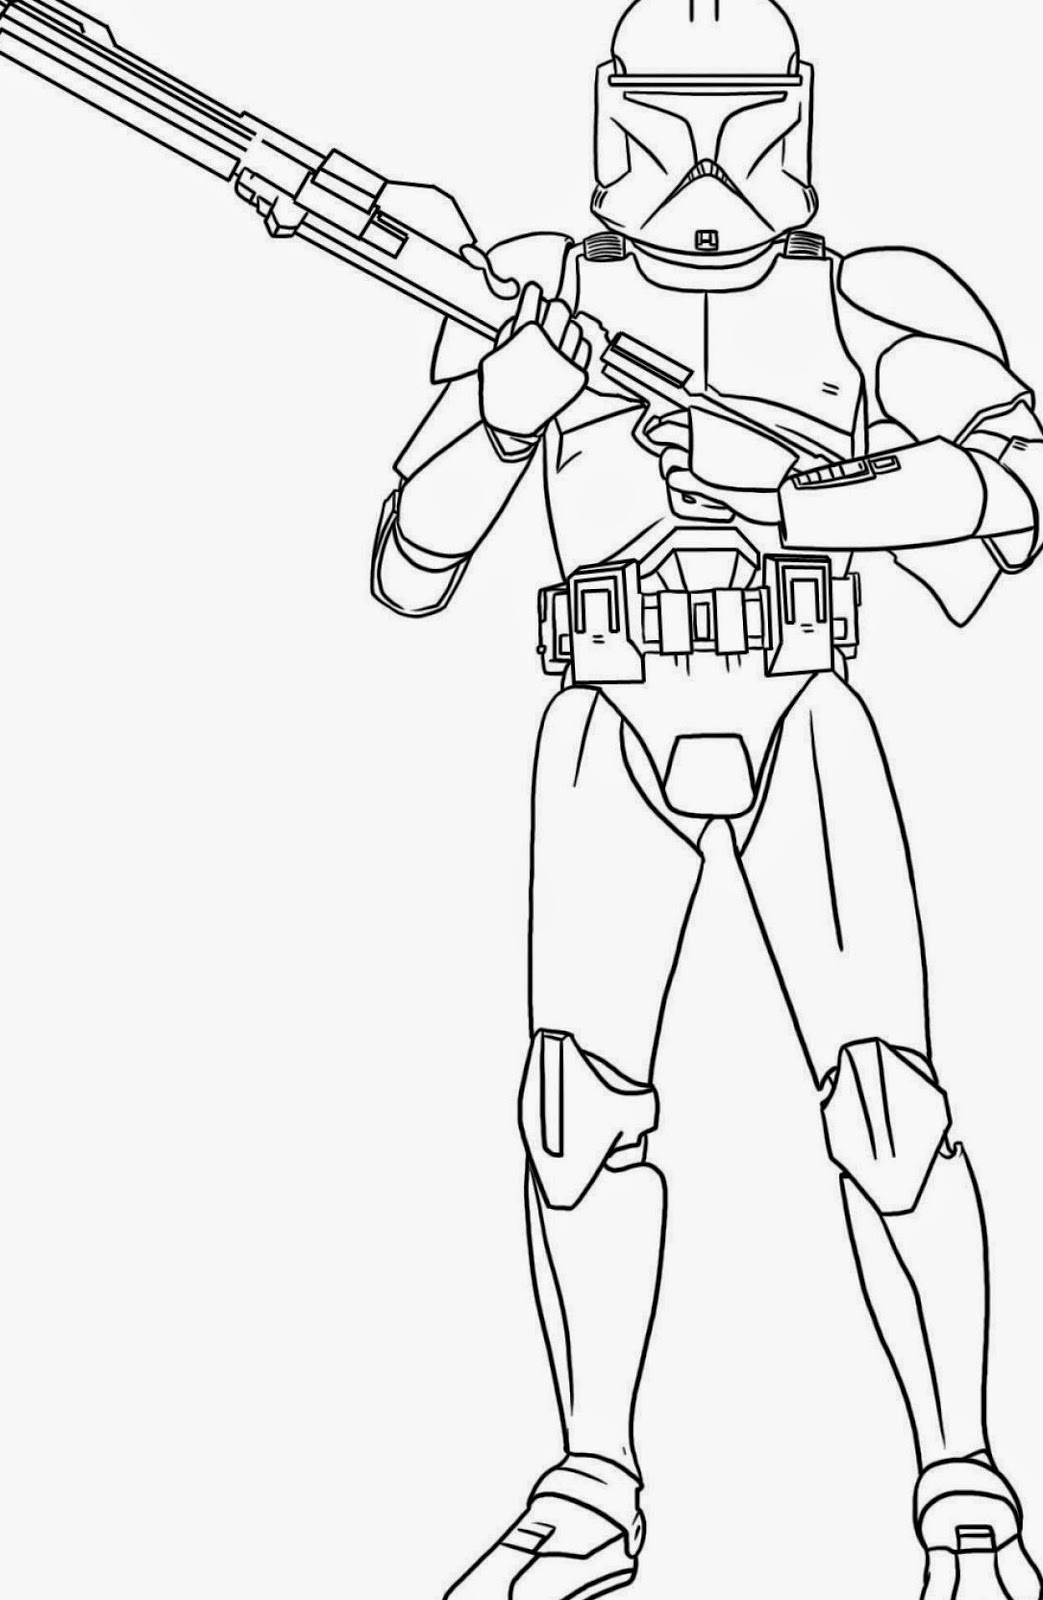 free star wars coloring pages coloring pages star wars free printable coloring pages wars free pages star coloring 1 1